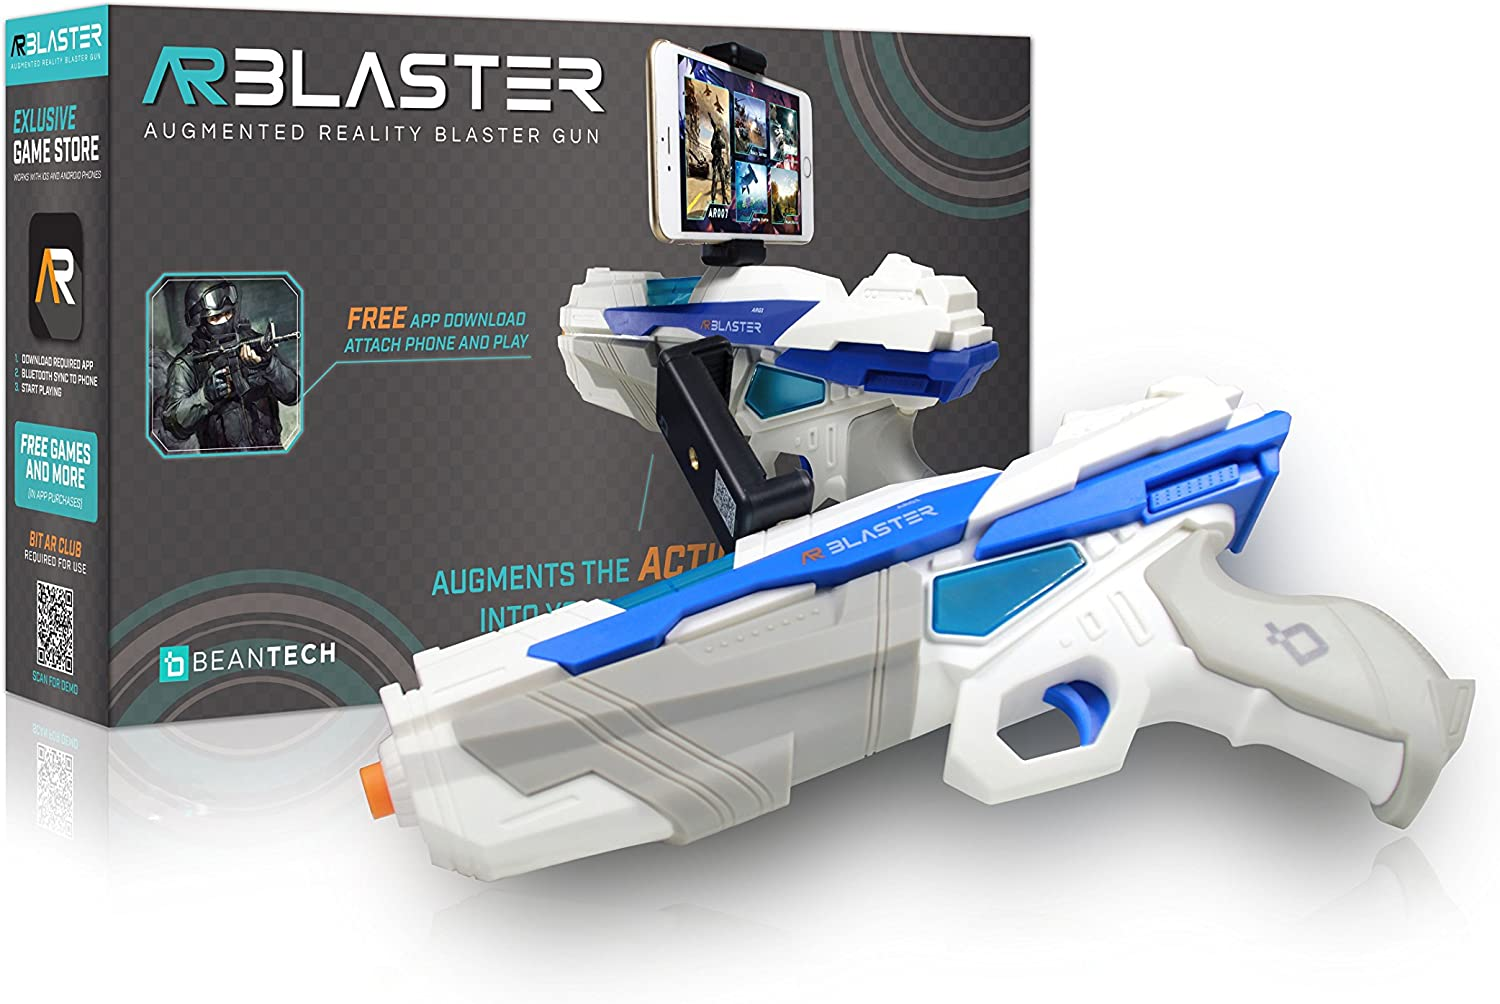 AR Blaster - 360° Augmented Reality Video Game - Smart Phone Toy Gun Controller for iPhone & Android phones - Bluetooth 4.2 - for Boys and Girls, Kids, ...